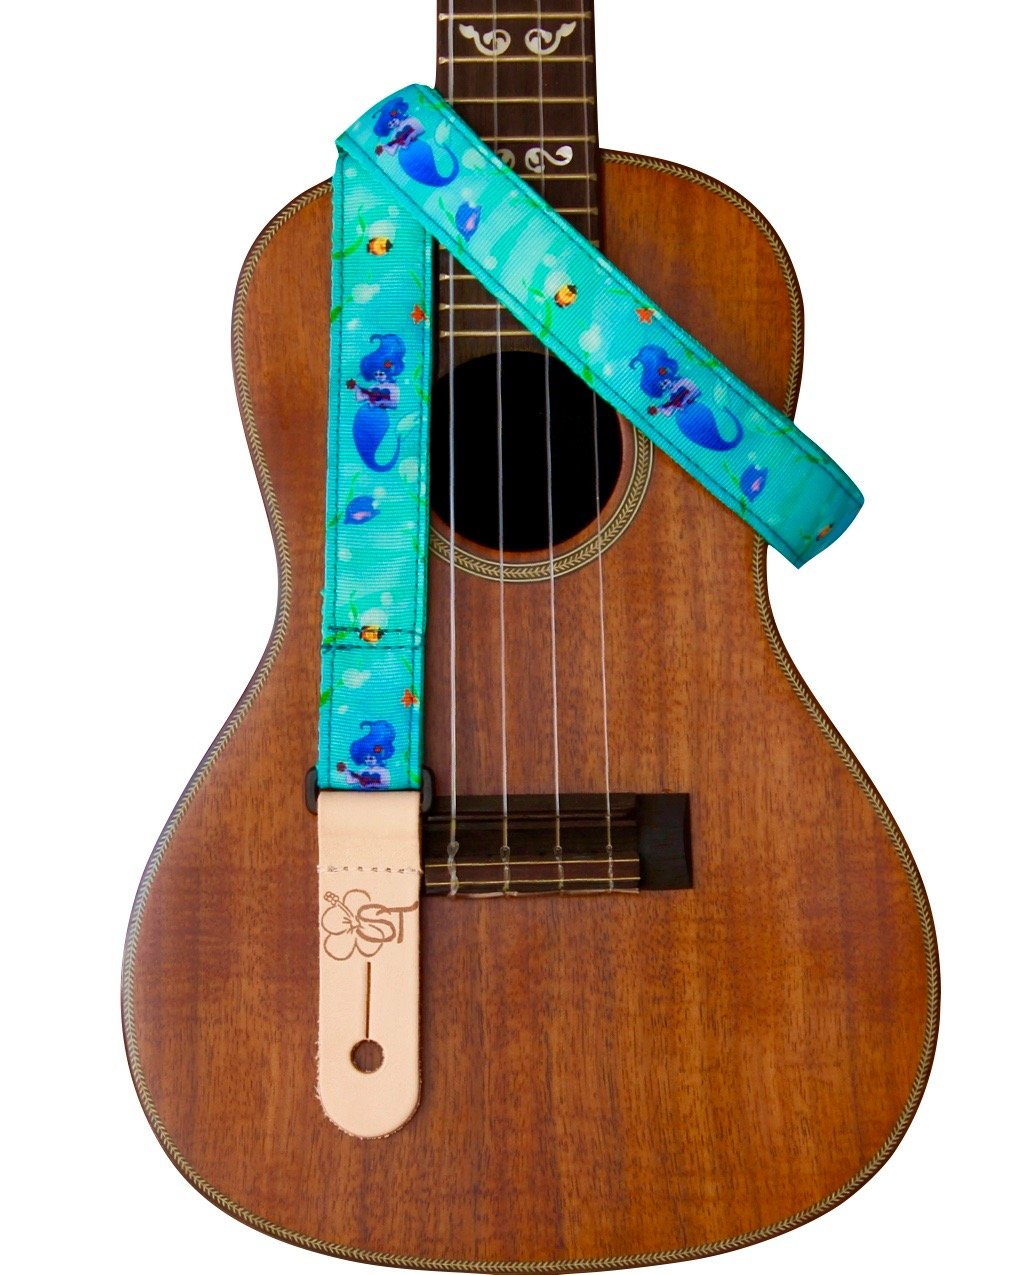 ST 1 Ukulele Strap - Blue Mermaid